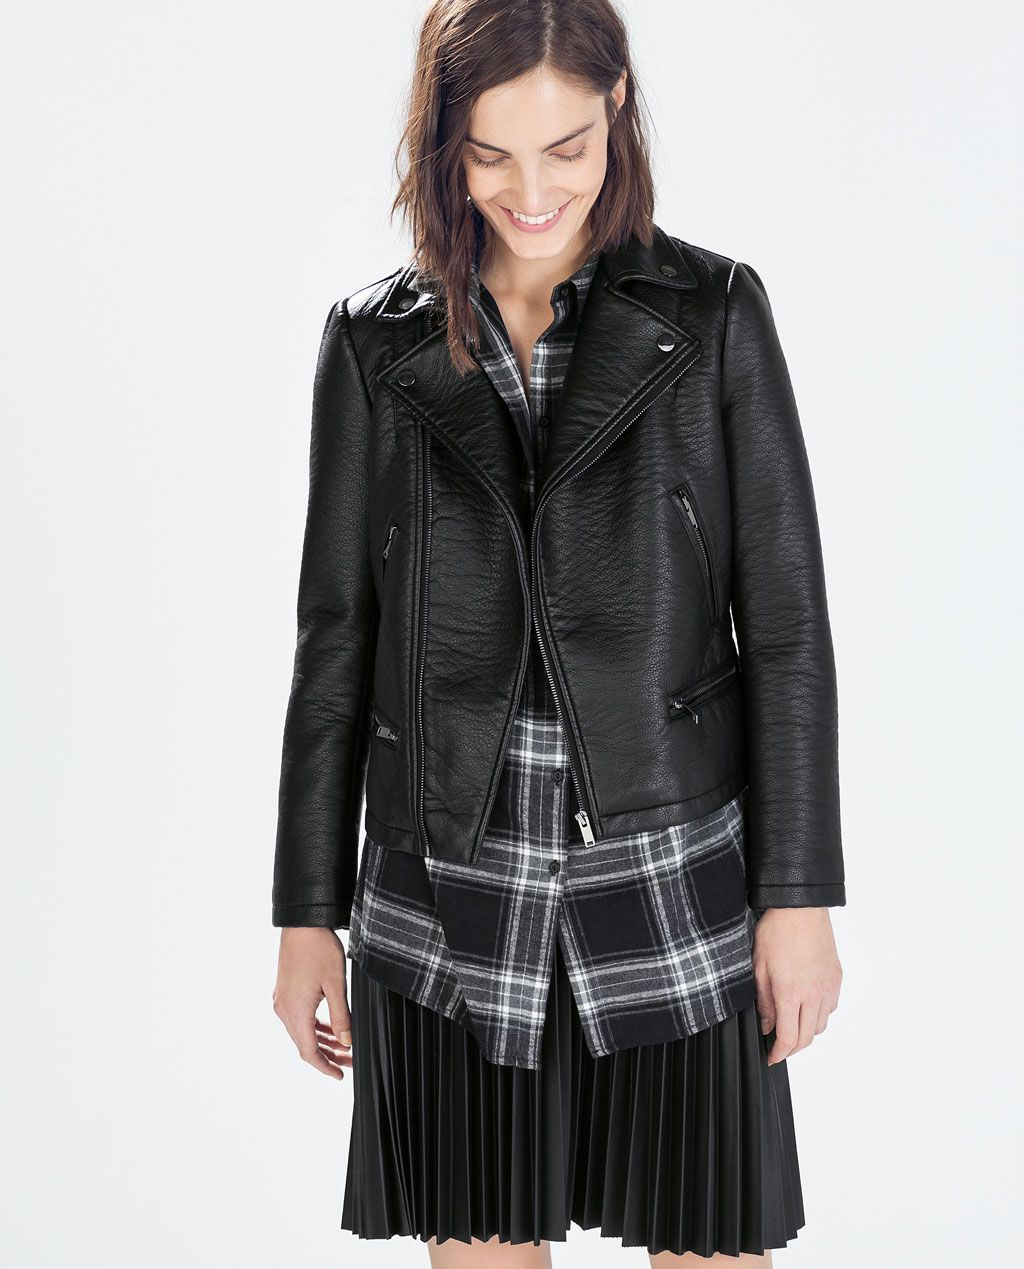 BIKER JACKET from Zara (With images) Womens biker jacket